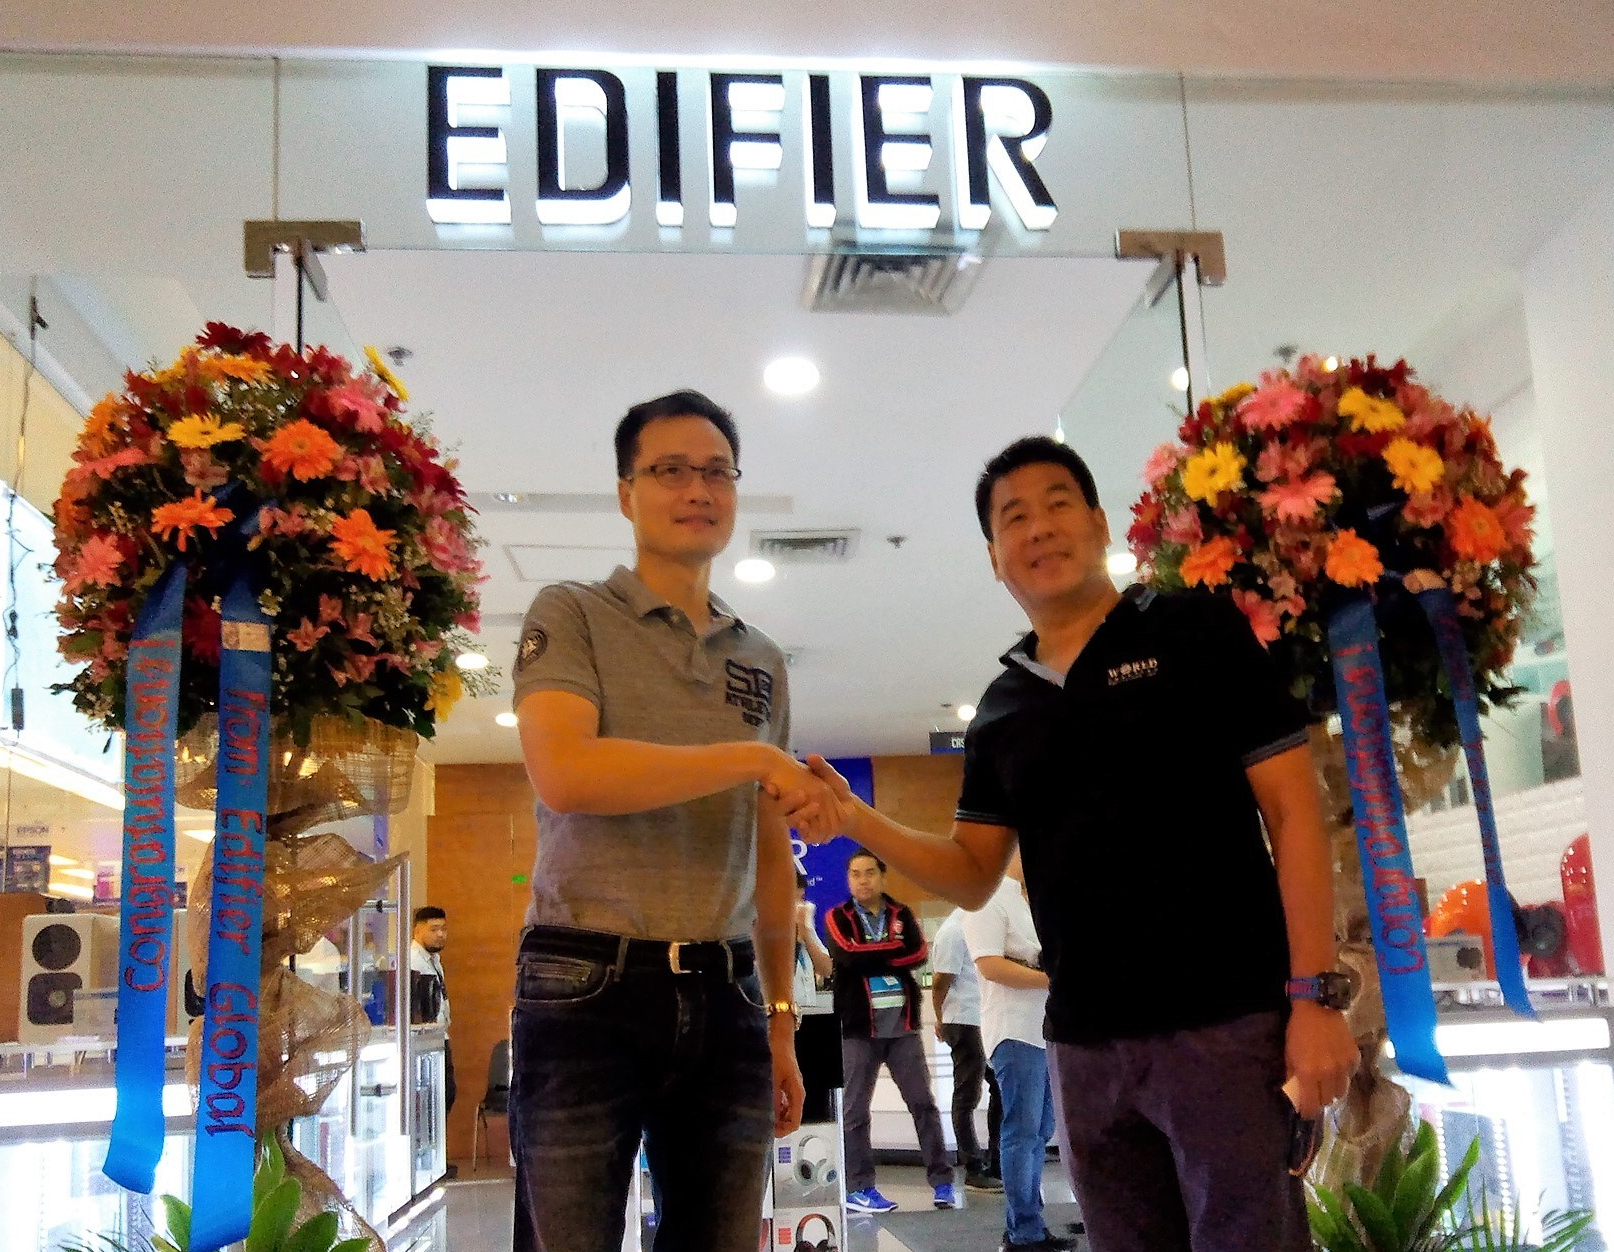 Edifier Concept store - Science and Digital News